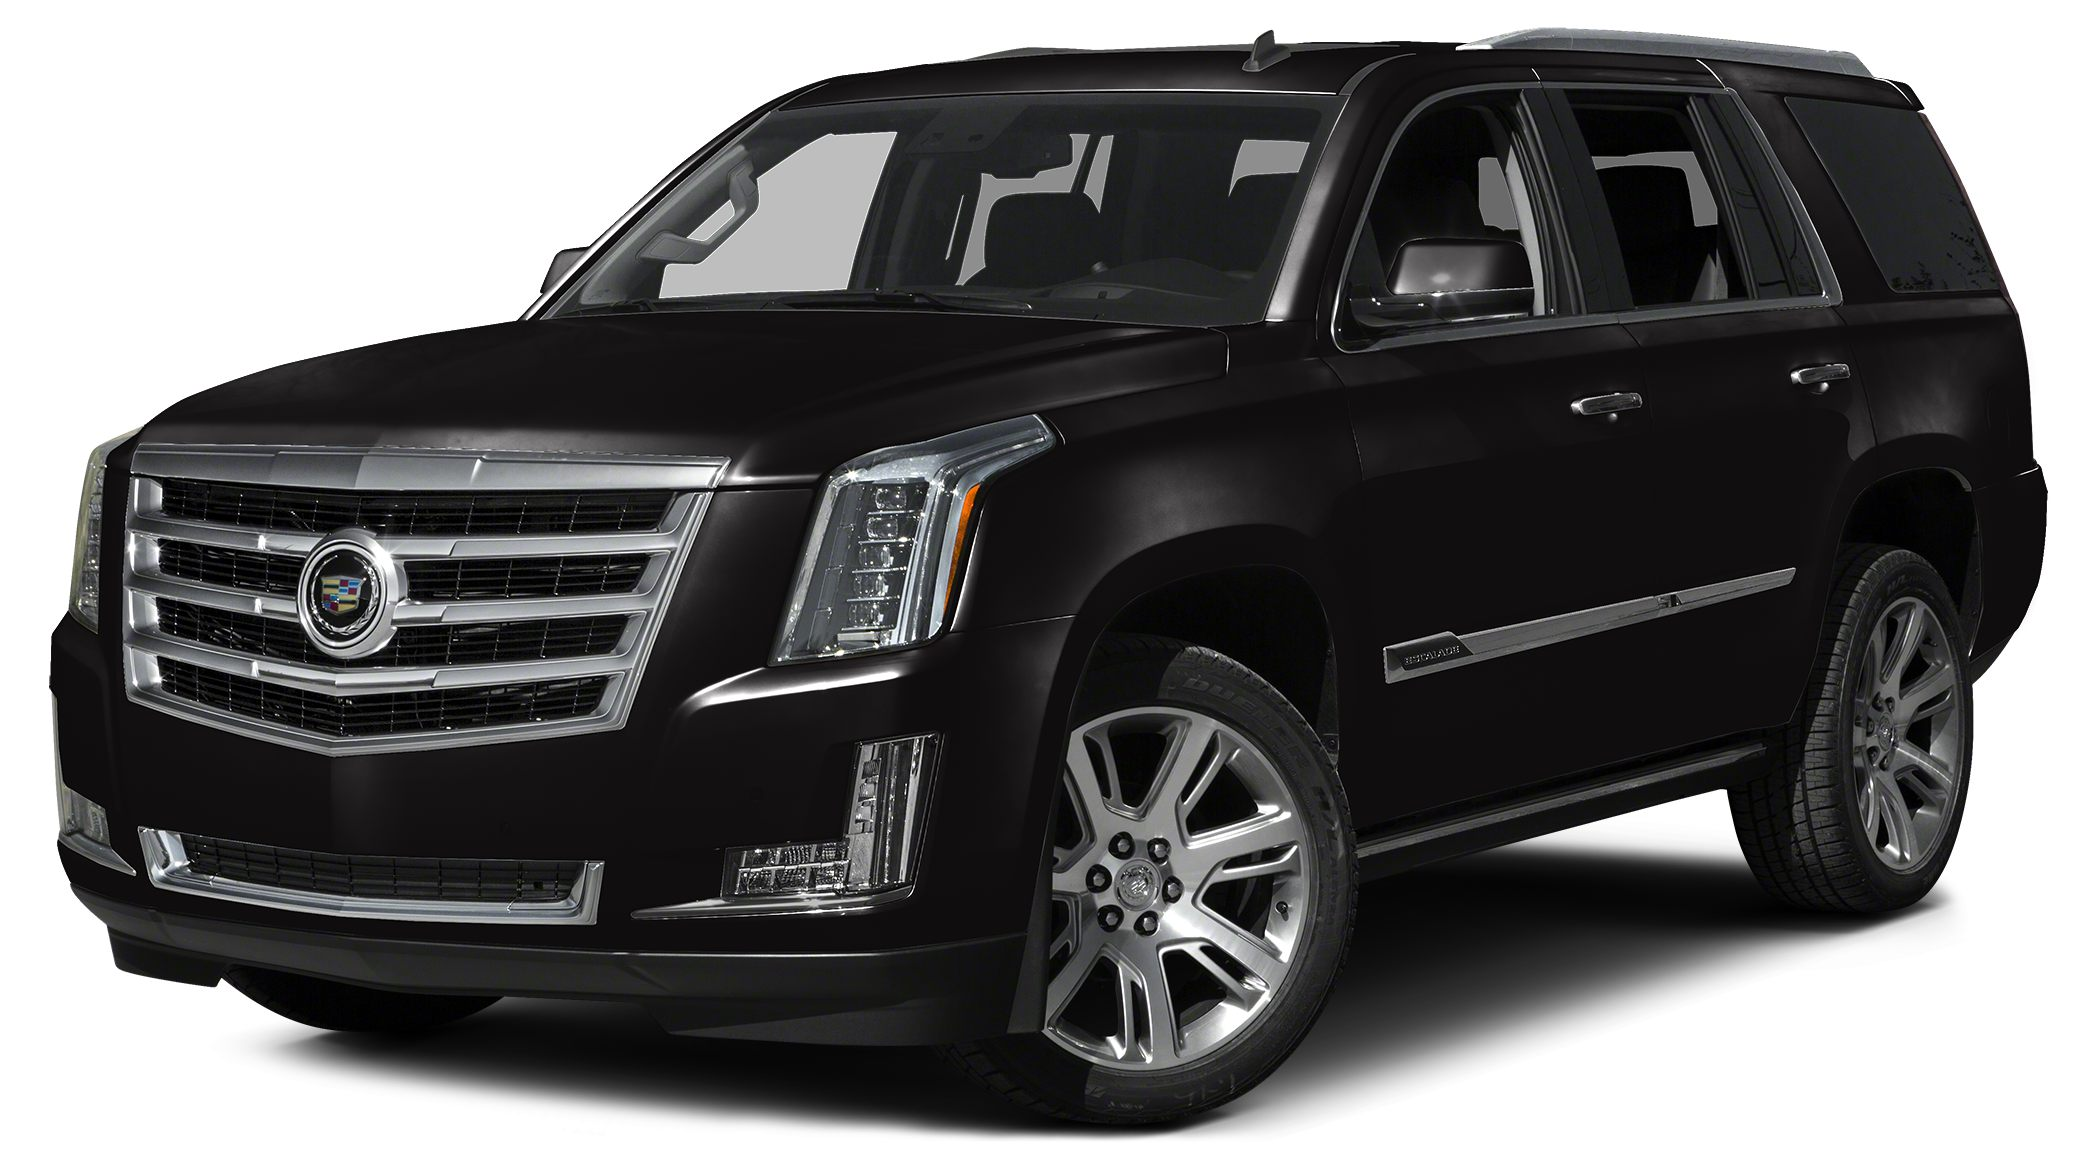 2015 Cadillac Escalade Premium Yes I am as good as I look New In Stock ATTENTION Safety e